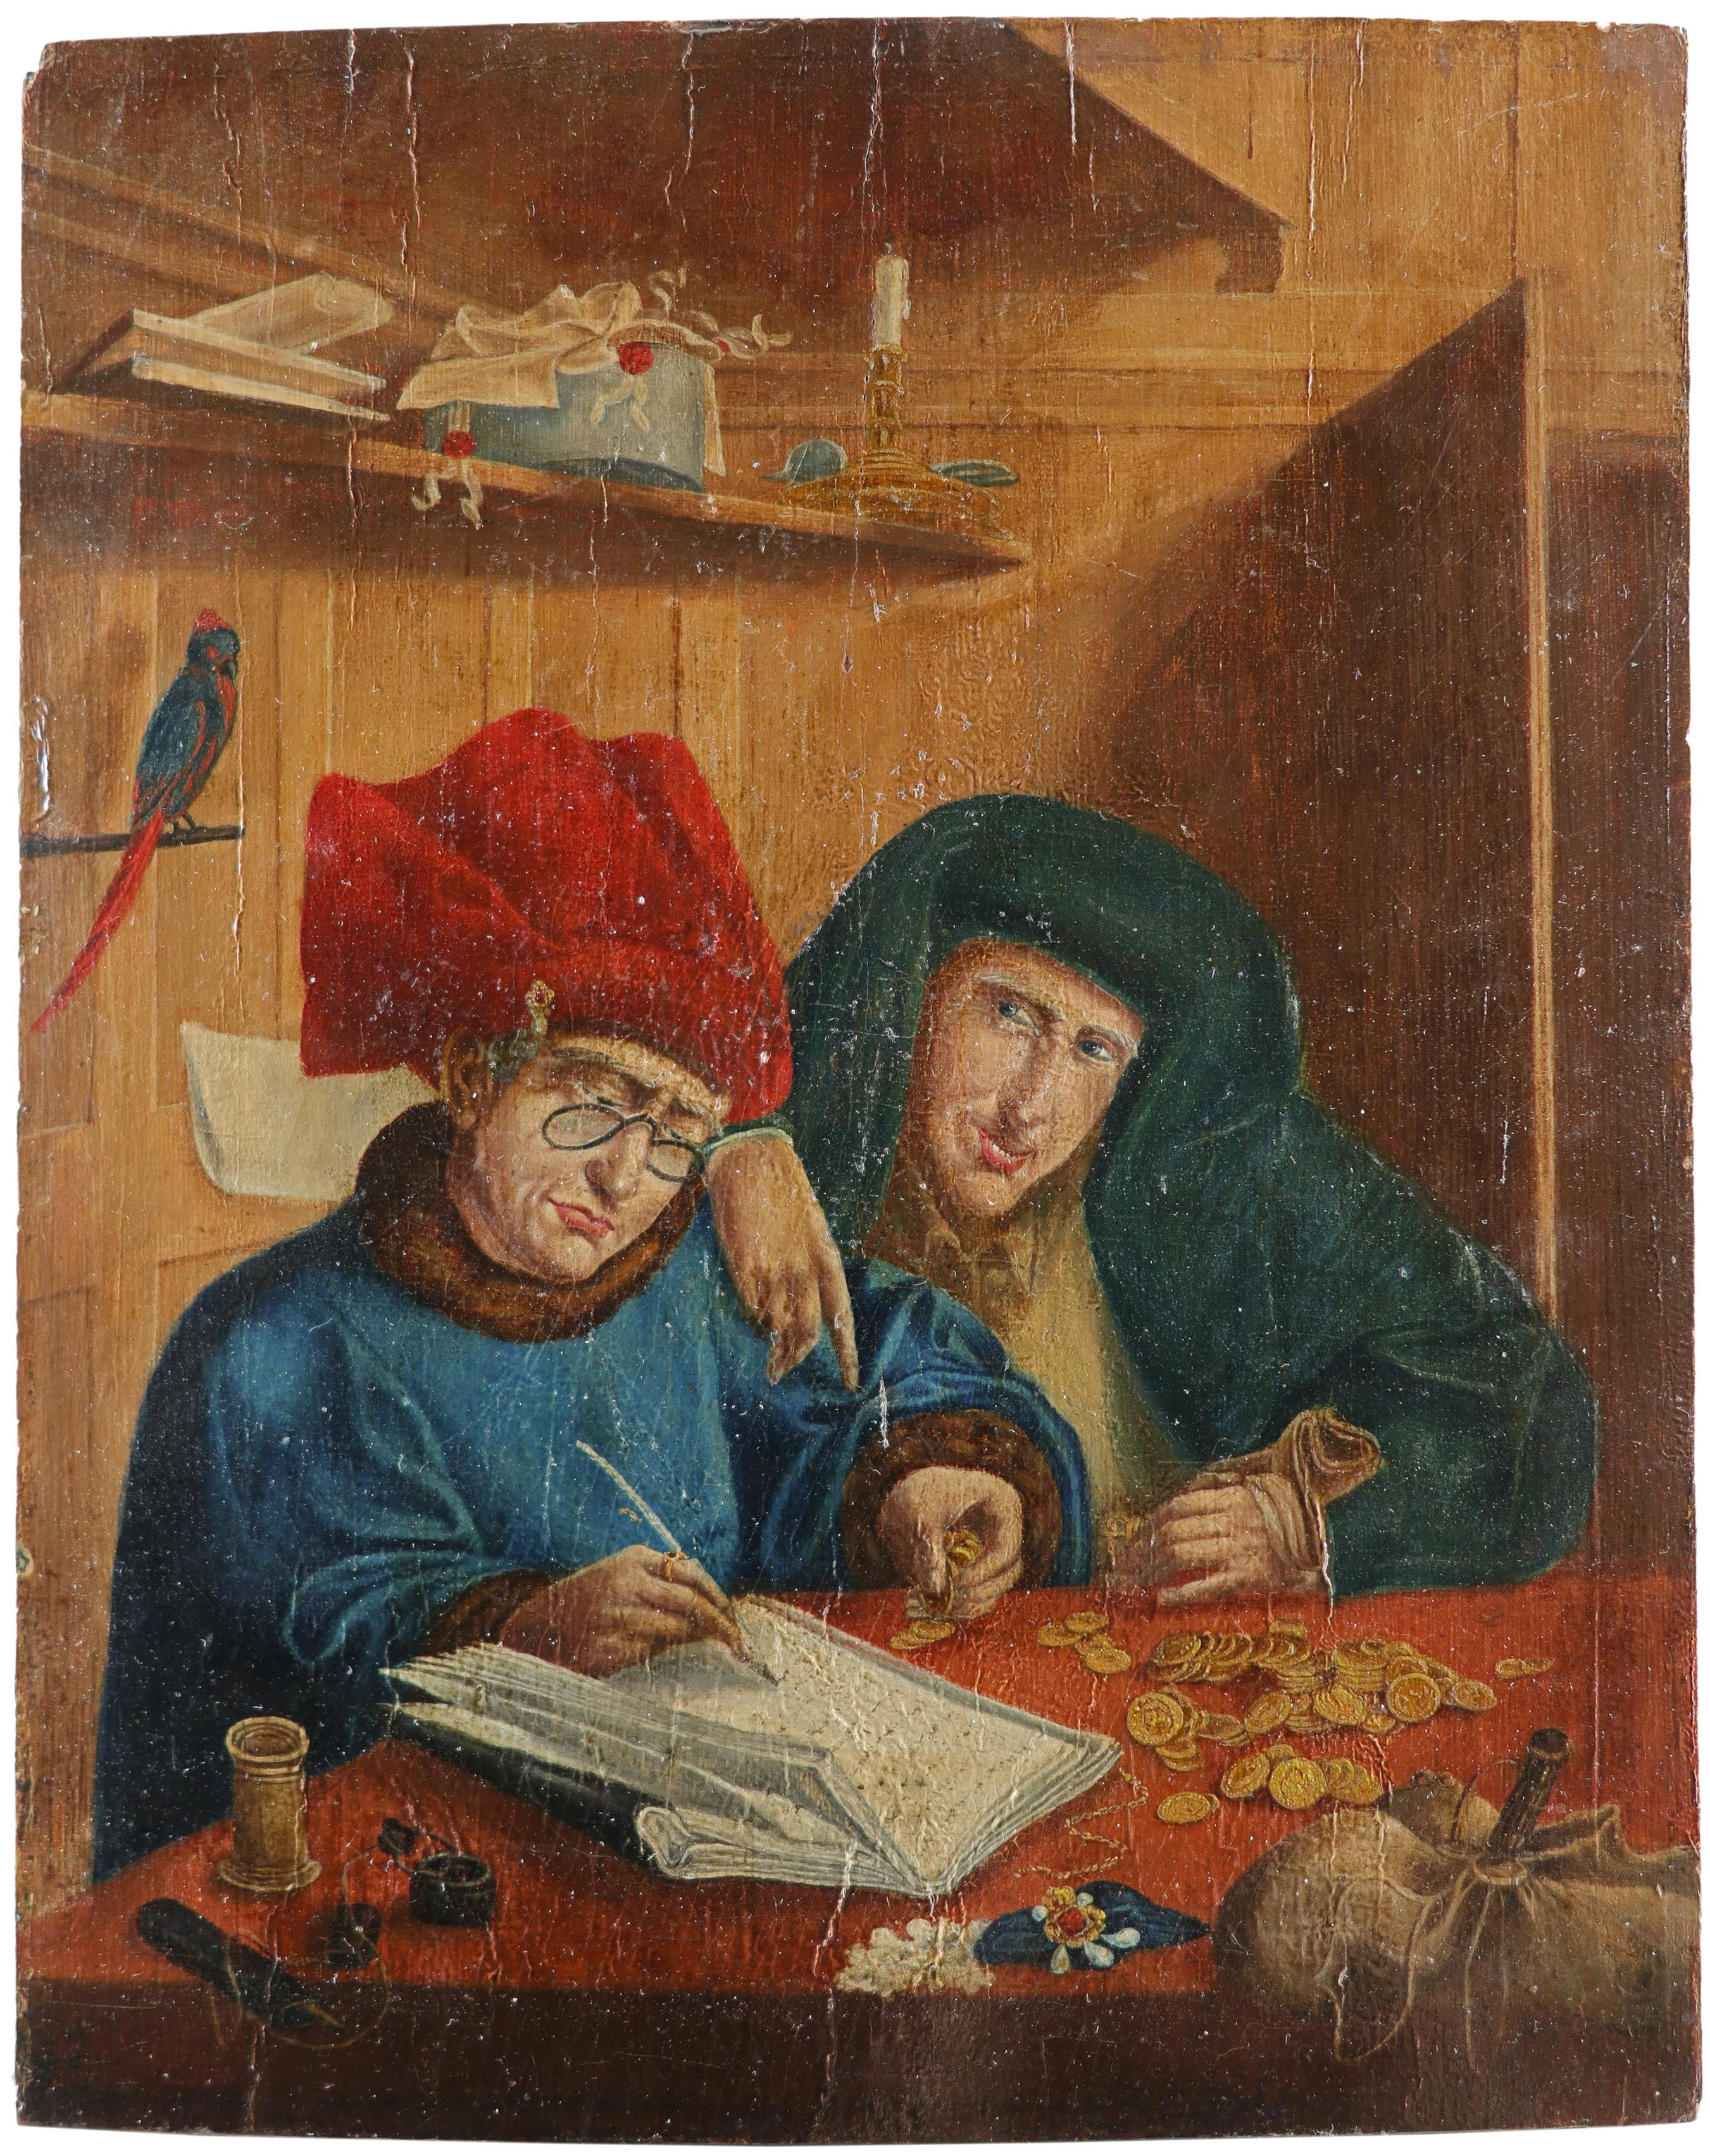 After Marinus van Reymerswale Two tax collectors Oil on panel 35.5 x 28.4cm; 14 x 11¼in Unframed - Image 2 of 3